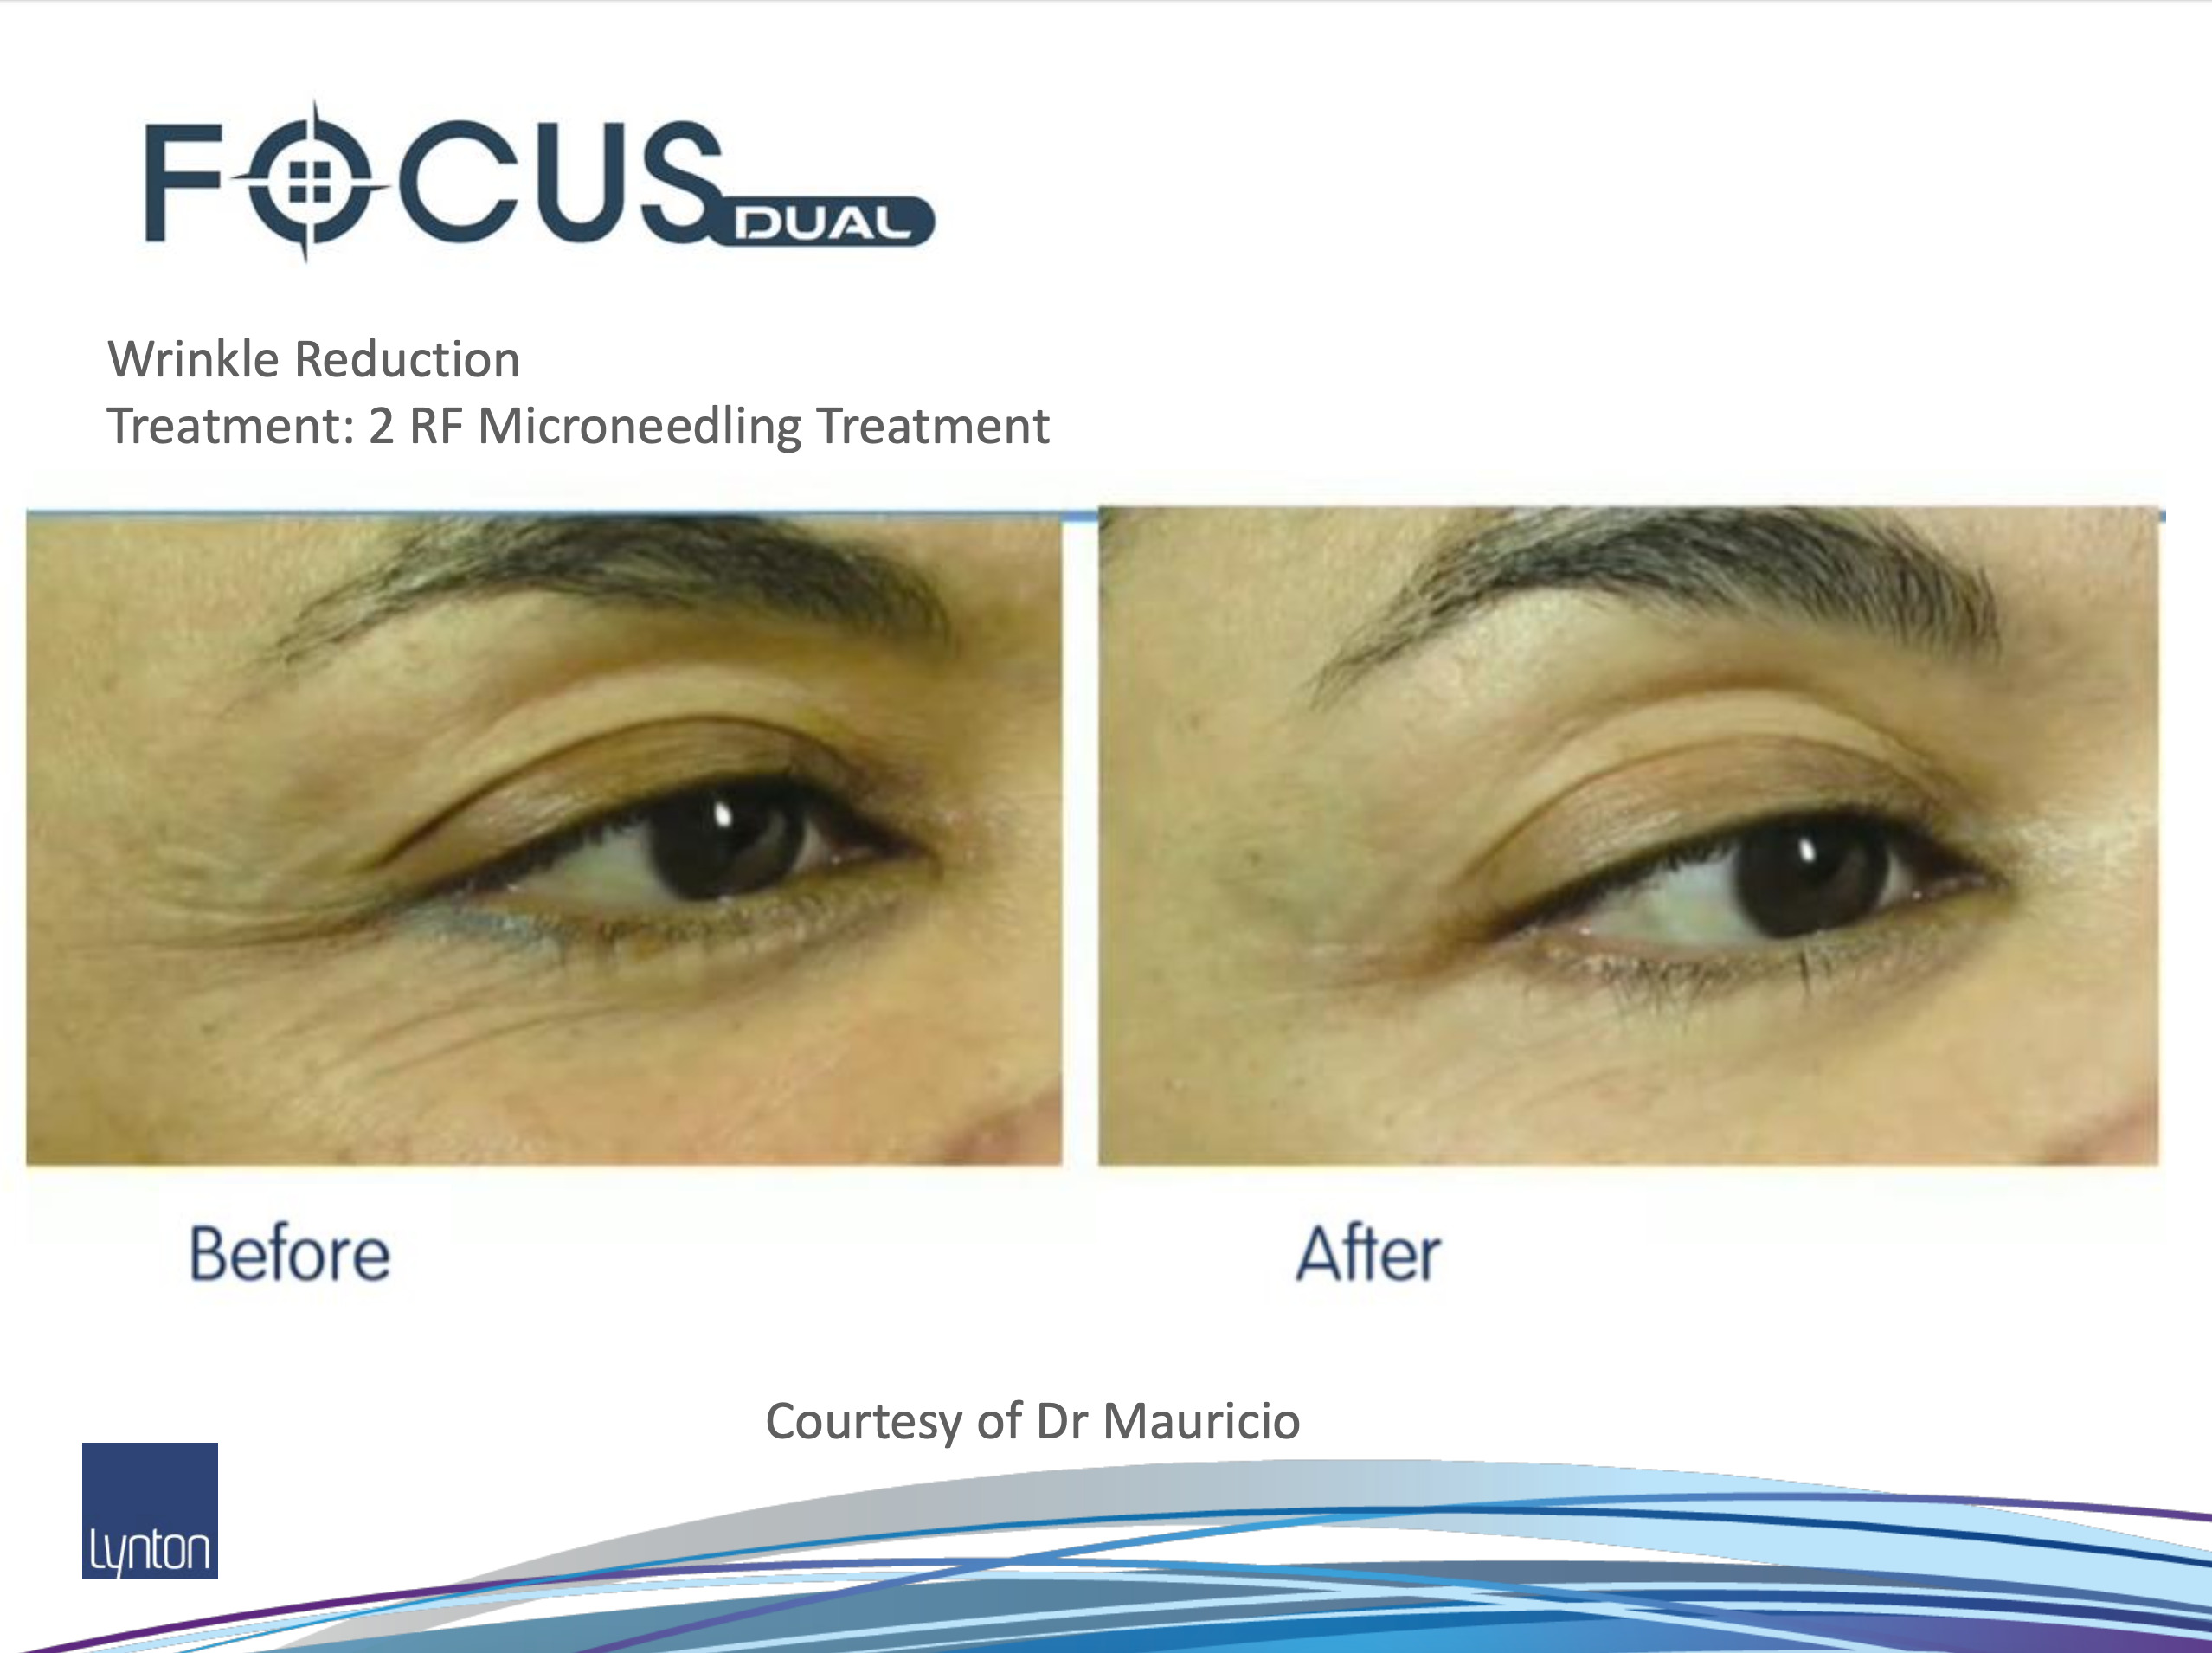 Before and After RF Microneedling on eye lines